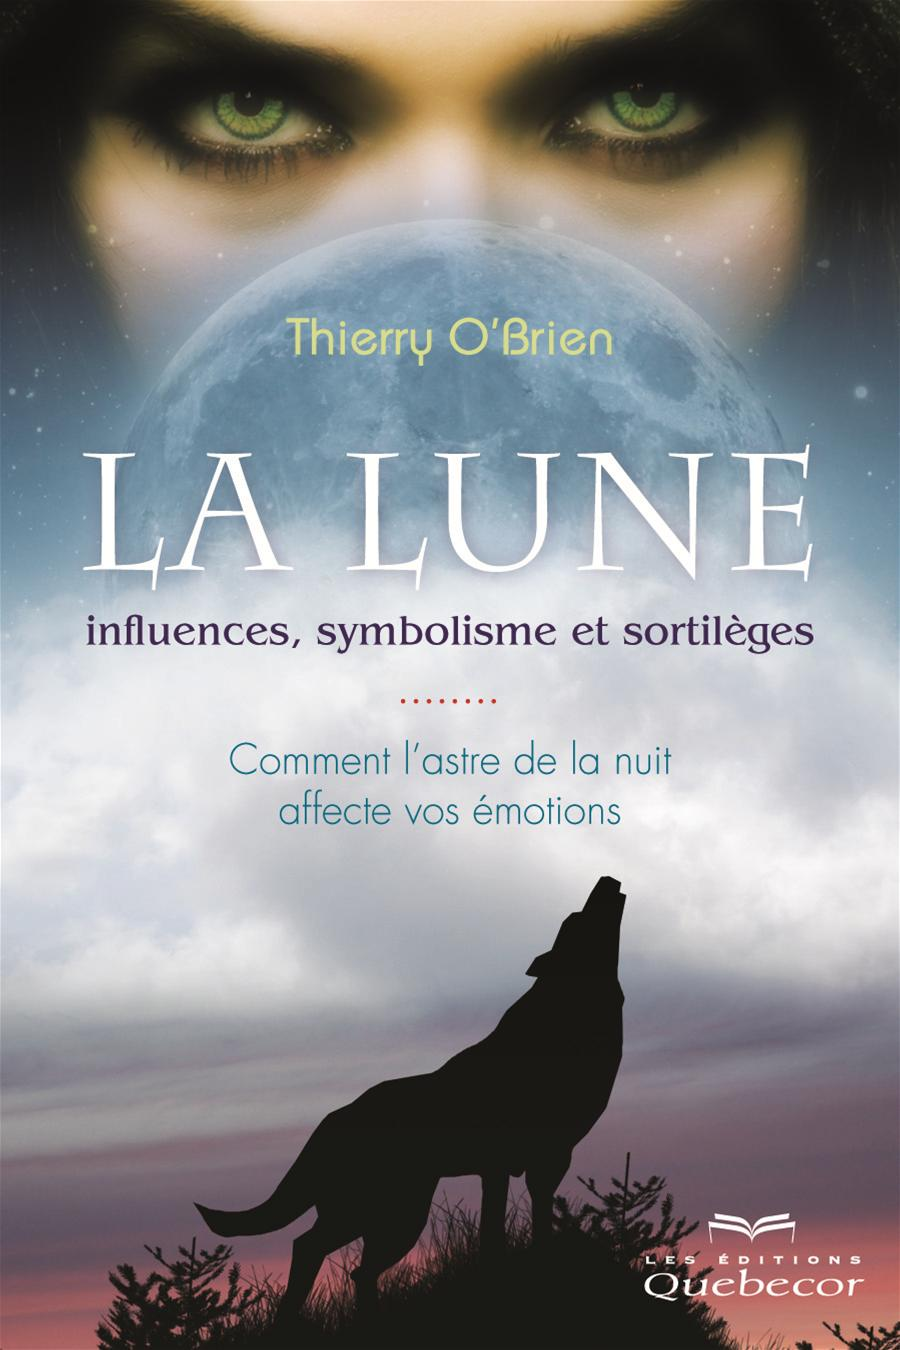 La lune: influences, symbolisme et sortilèges